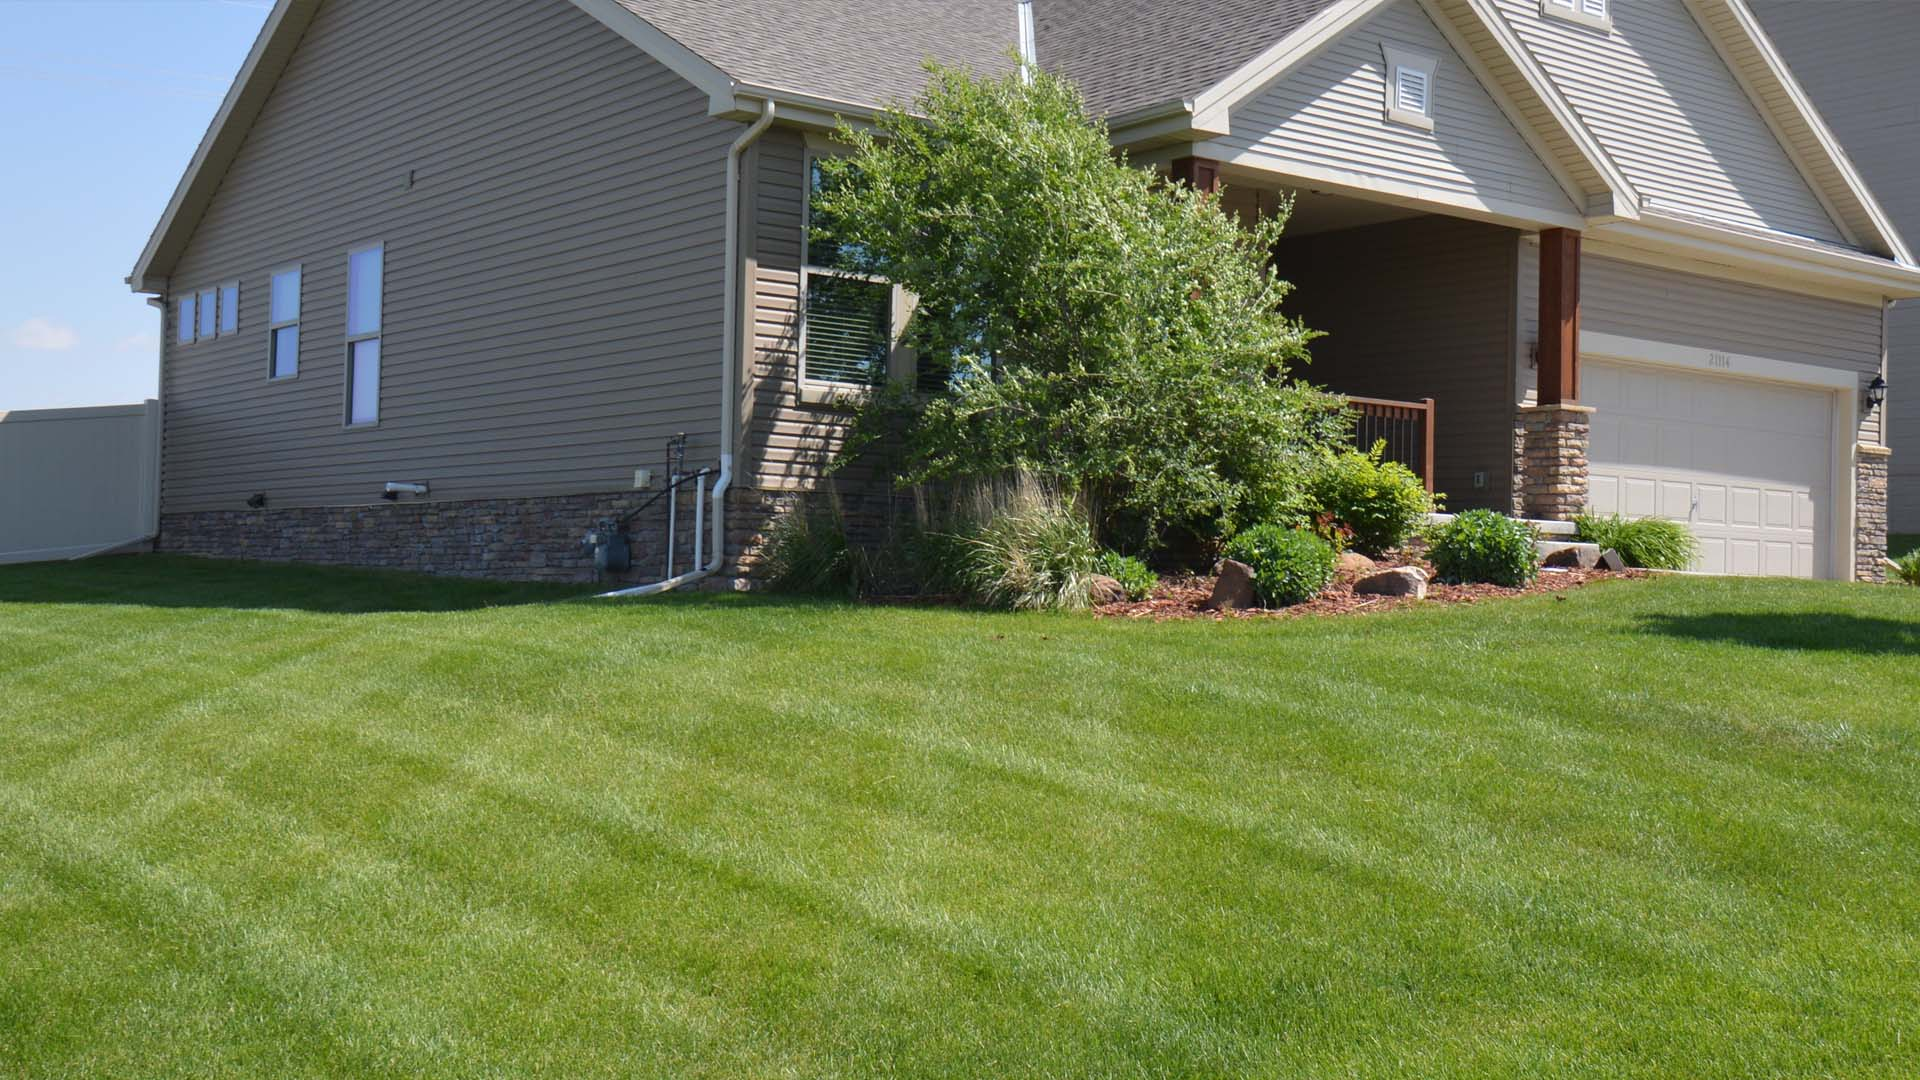 Go Green Lawns LLC services Louisville and surrounding areas